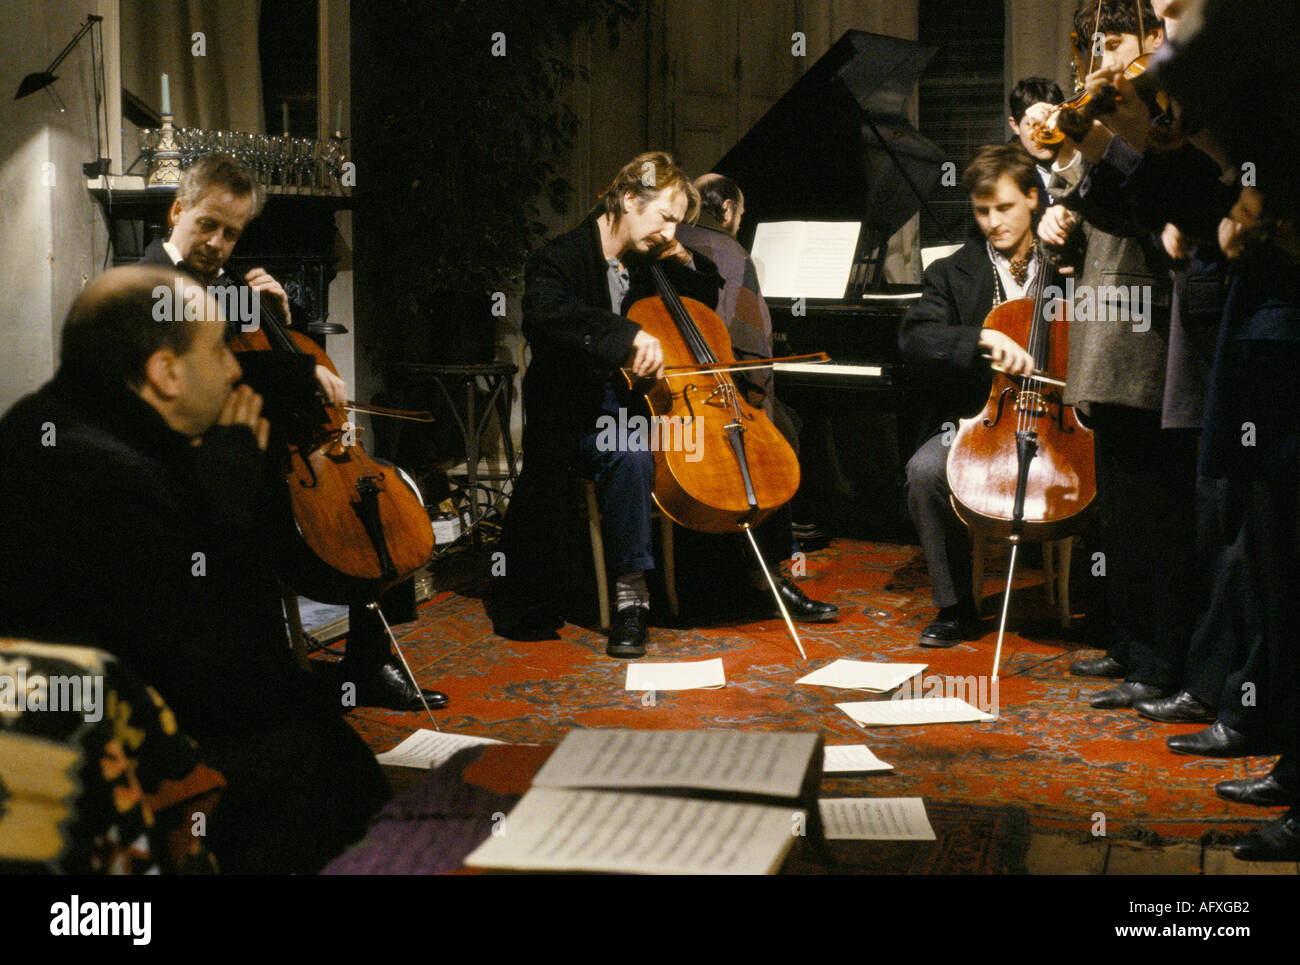 Alan Rickman British actor playing cello on film set of Truly Madly Deeply HOMER SYKES - Stock Image